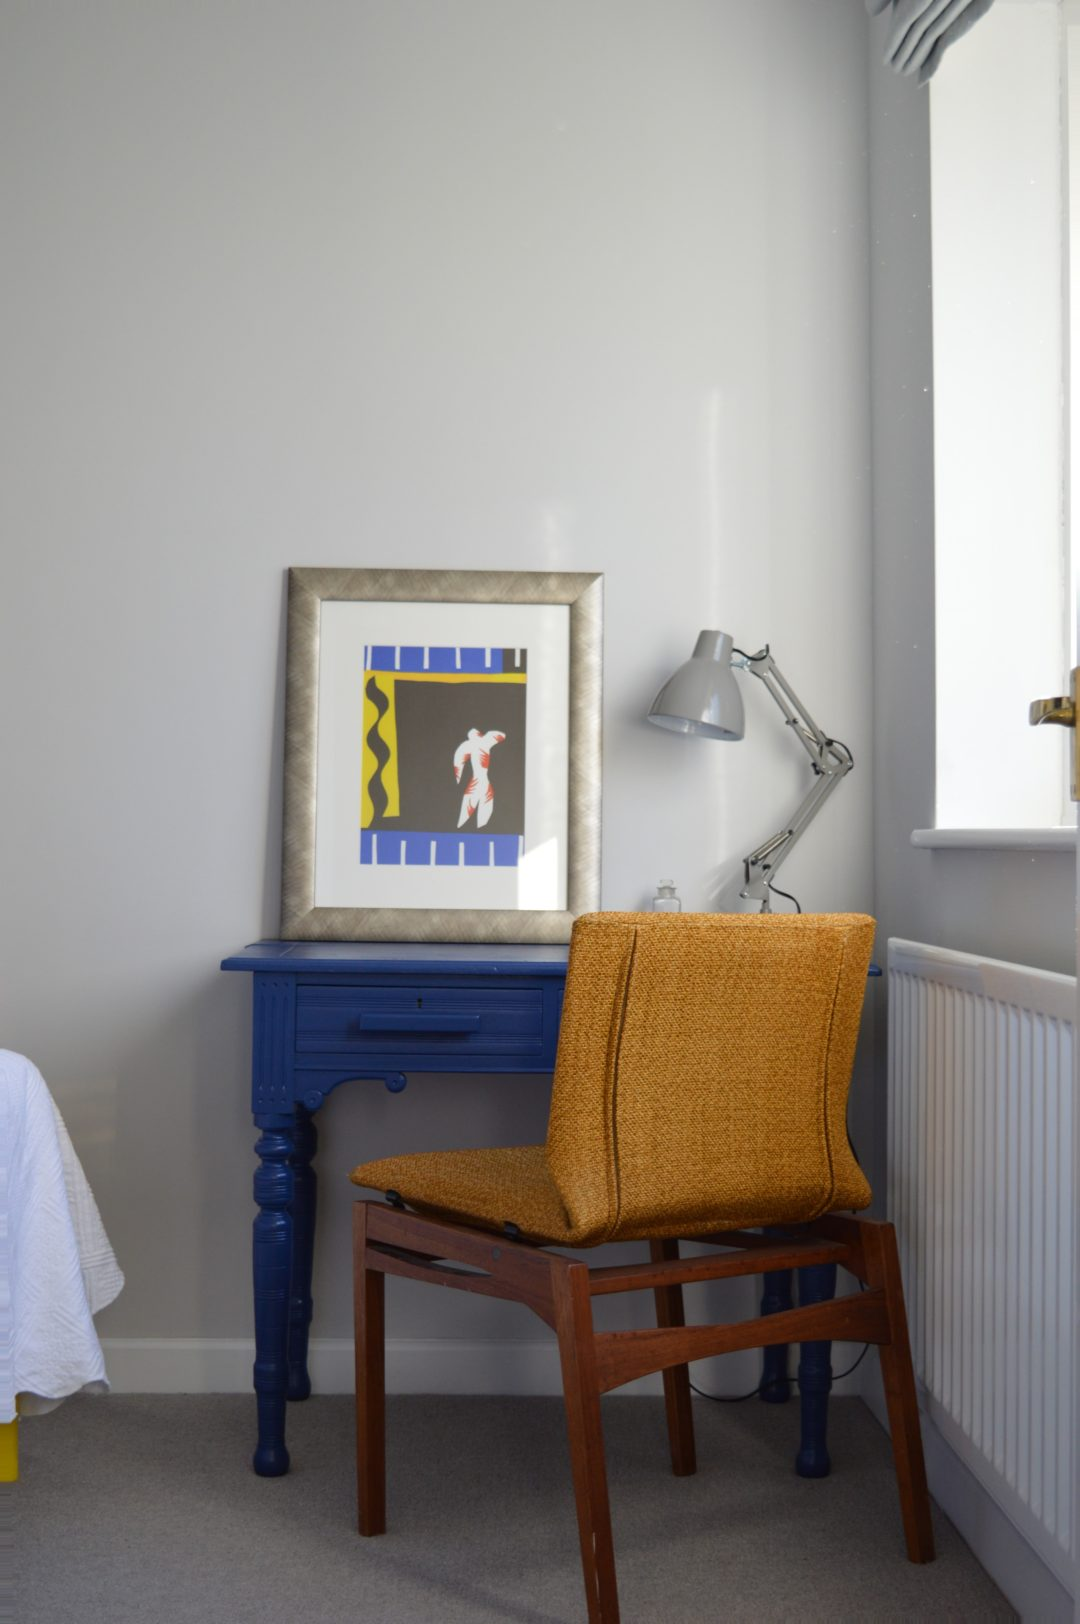 Spare bedroom Dulux Sapphire Salute desk mid century chair